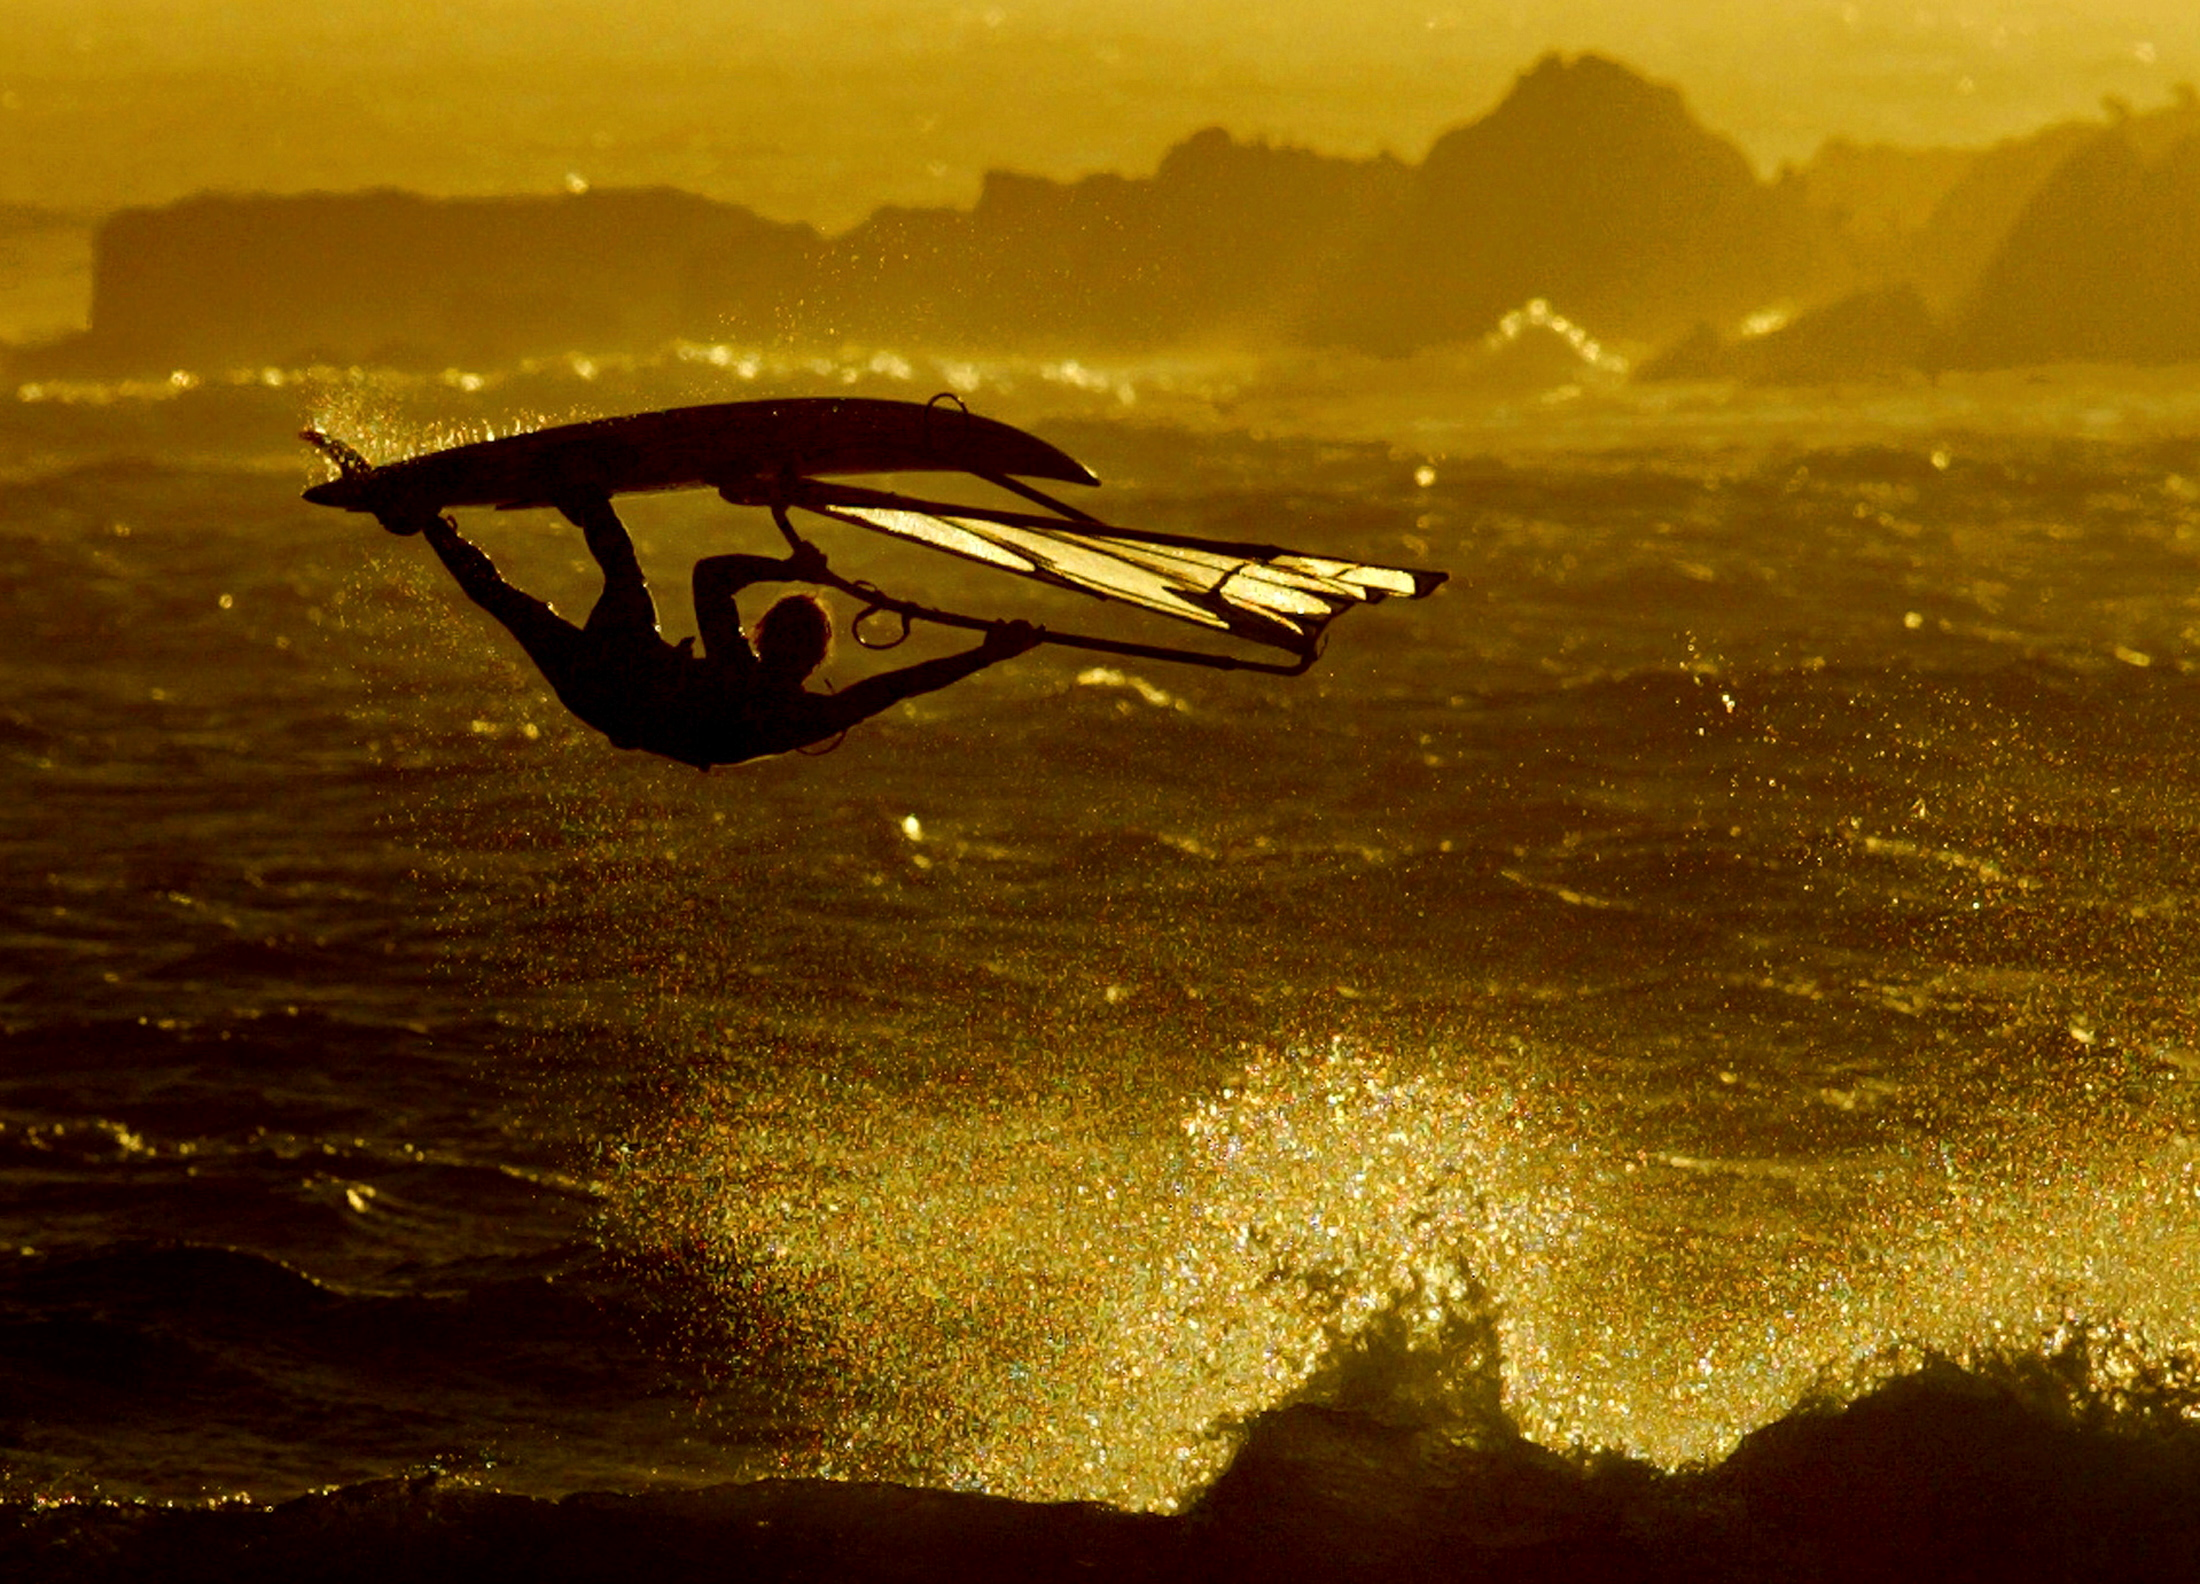 A windsurfer gets airborne as the sun sets over Cape Town's Blaauwberg beach, February 23, 2004.